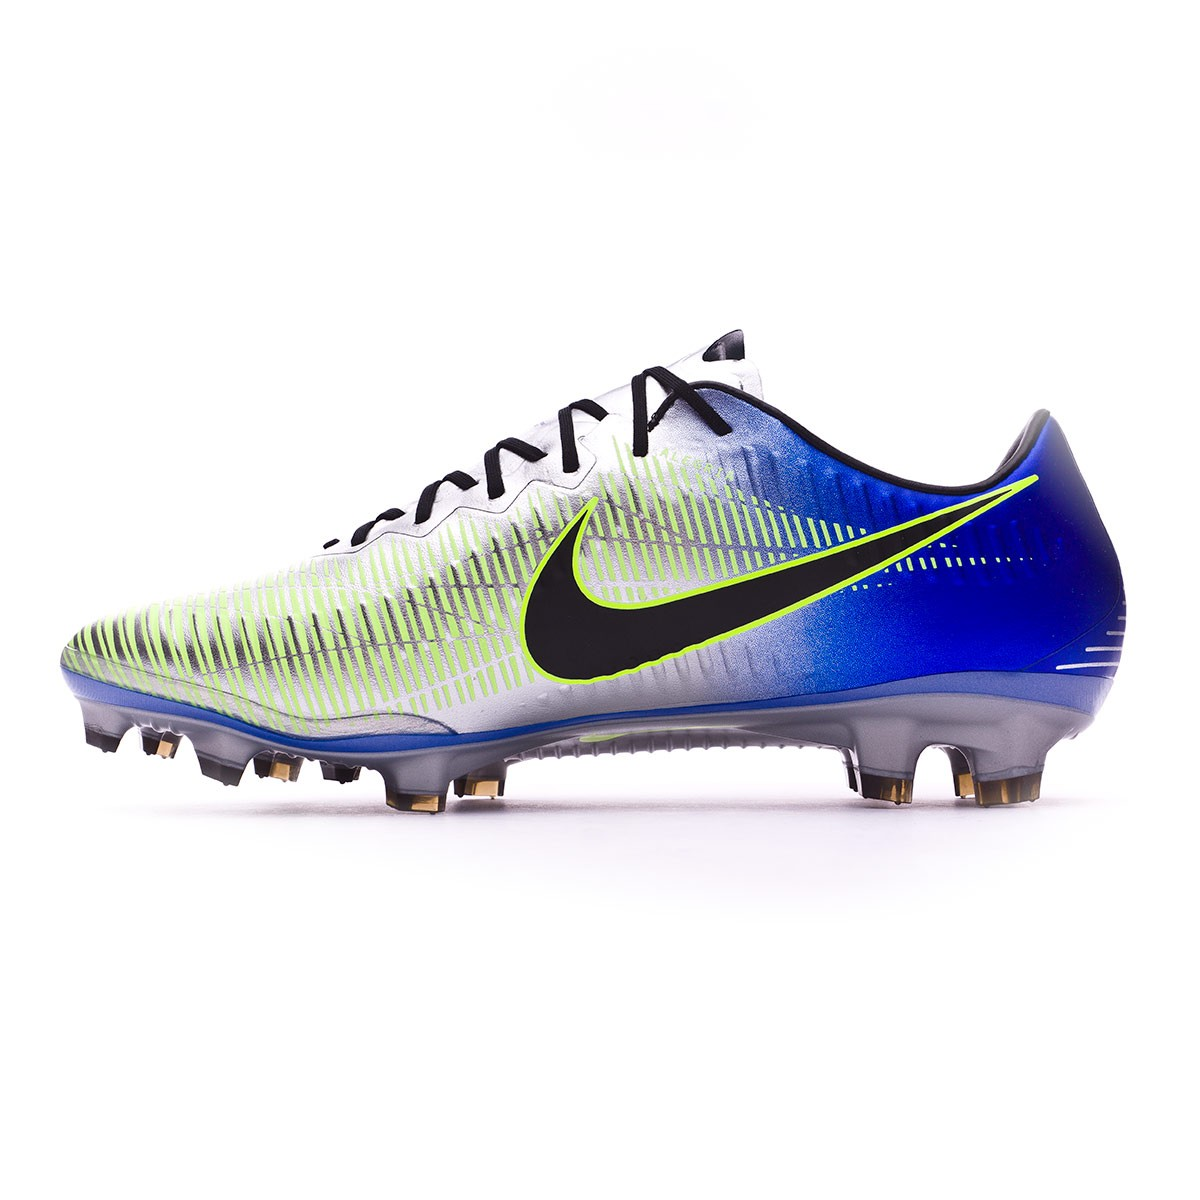 e47bc81b121 Football Boots Nike Mercurial Vapor XI FG Neymar Racer  blue-Black-Chrome-Volt - Football store Fútbol Emotion